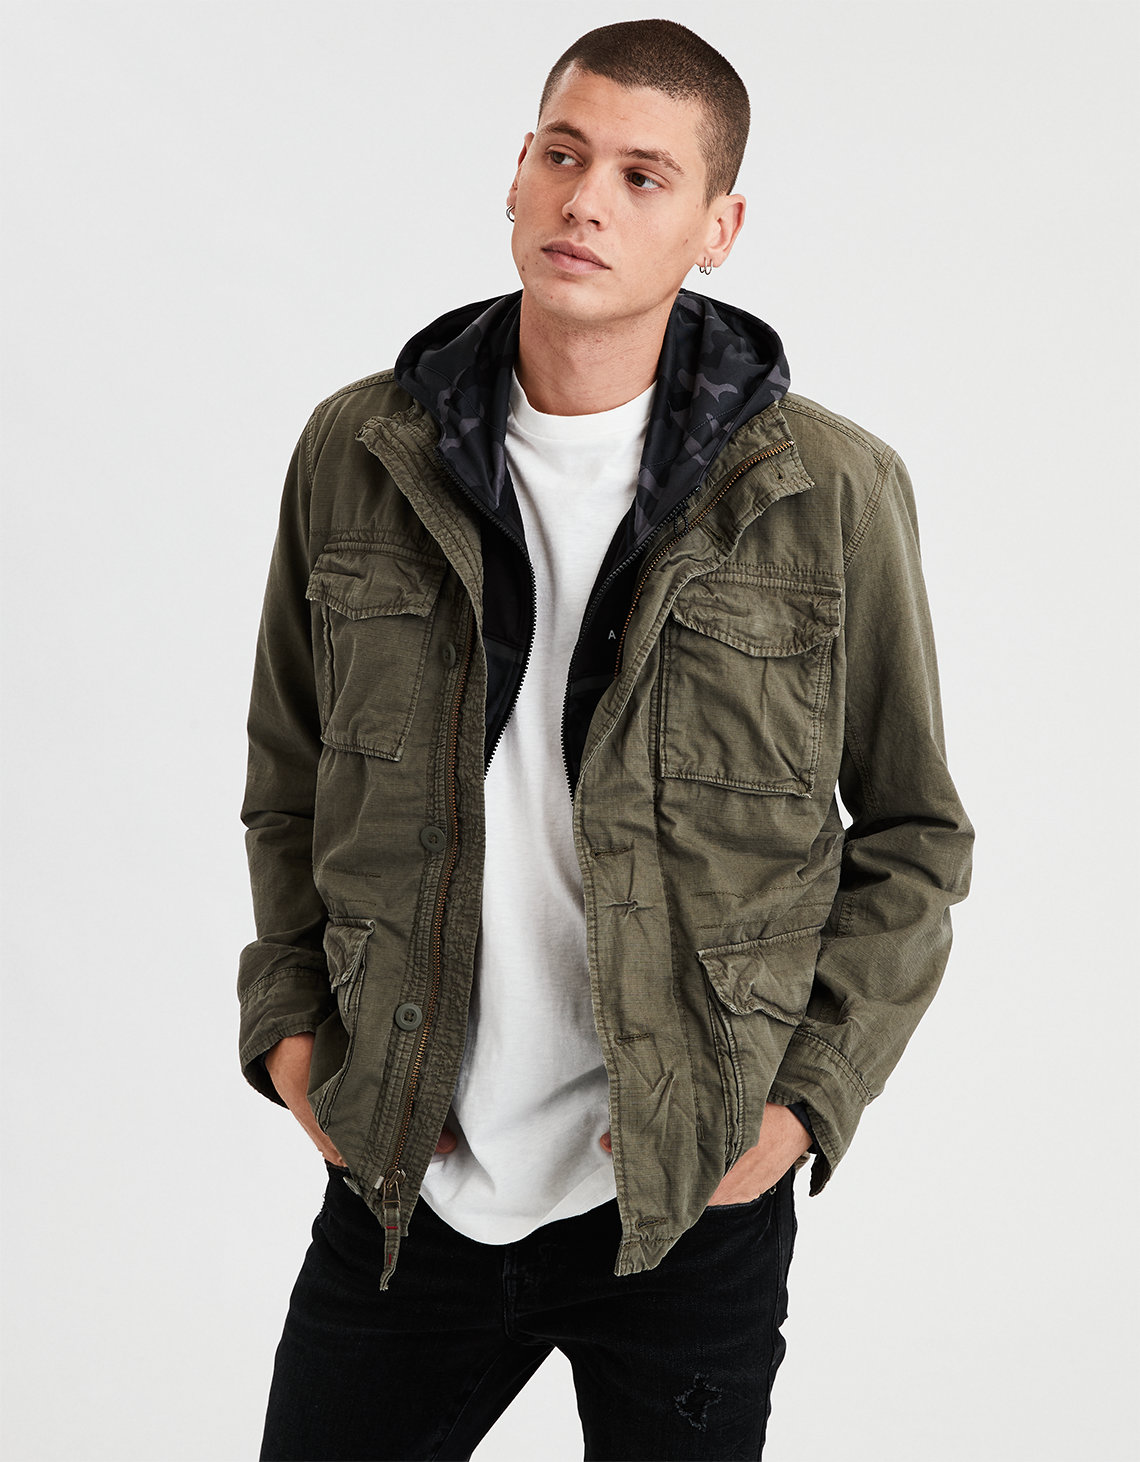 Ae Military Jacket Olive American Eagle Outfitters Tendencies Sweater Hoody Green Zipper S